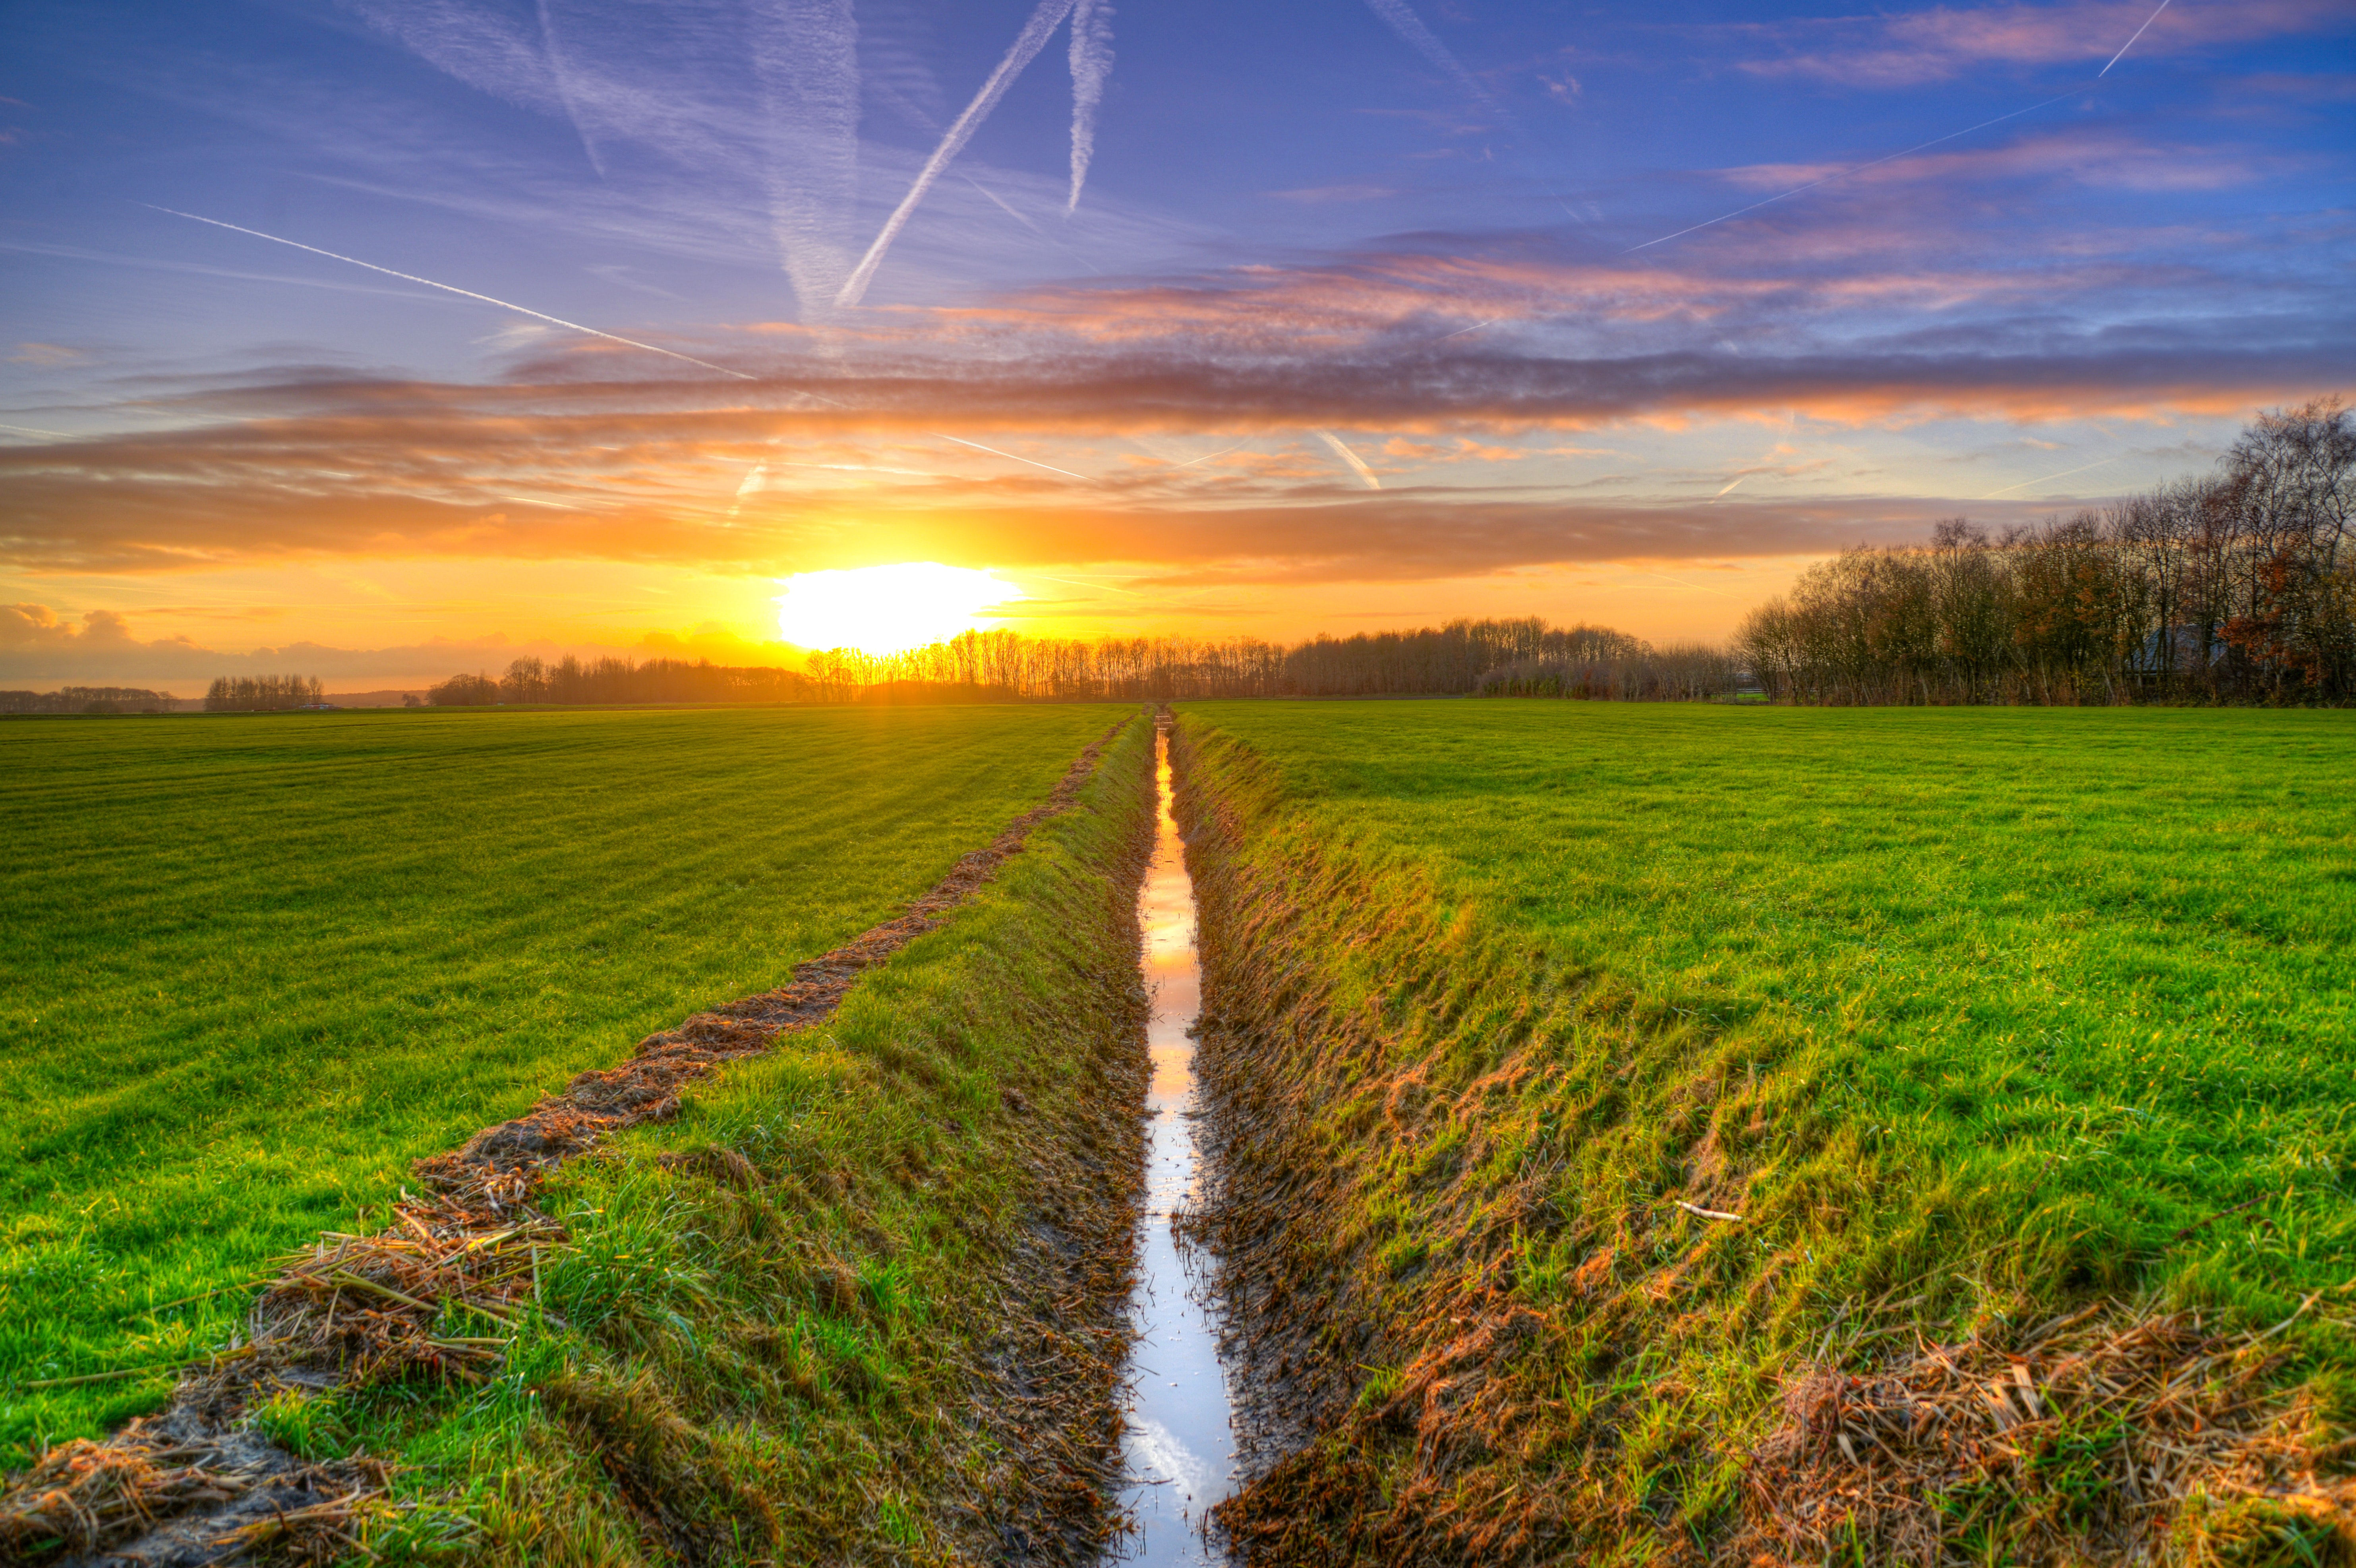 Scenic View of the Field, Agriculture, Scenic, Water, Trees, HQ Photo